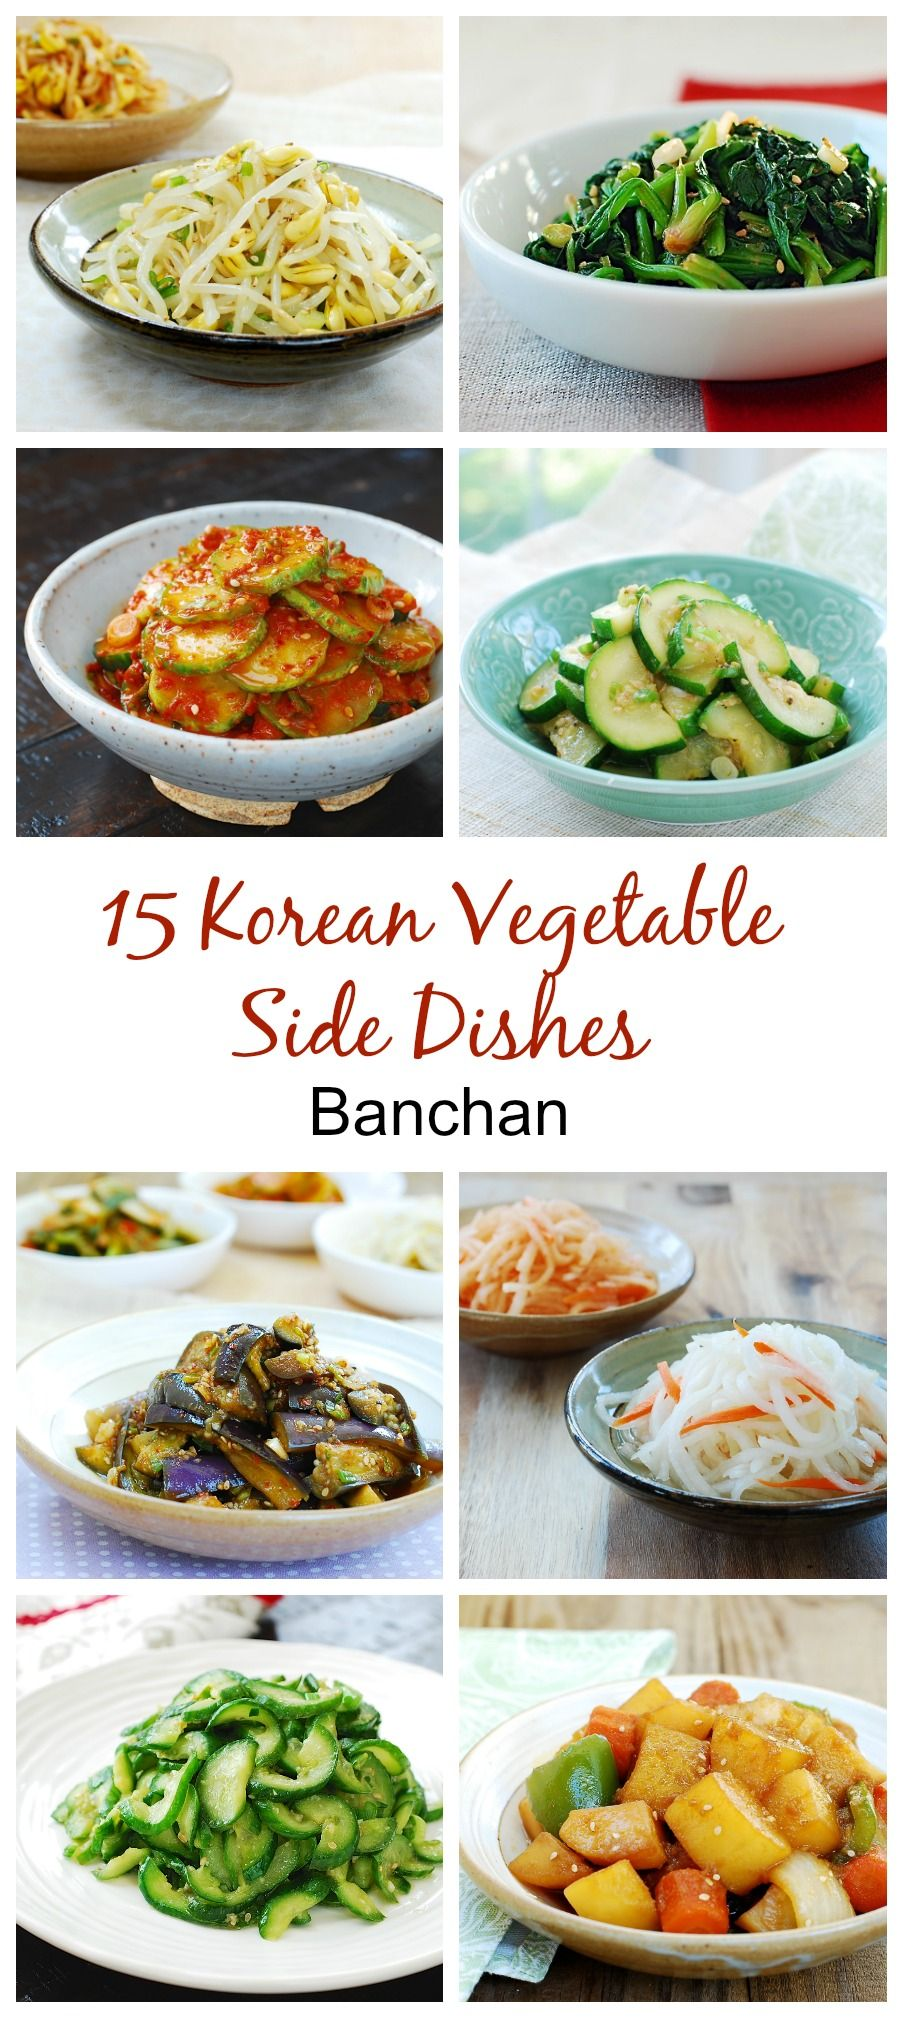 15 Korean Vegetable Side Dishes Korean Vegetables Vegetable